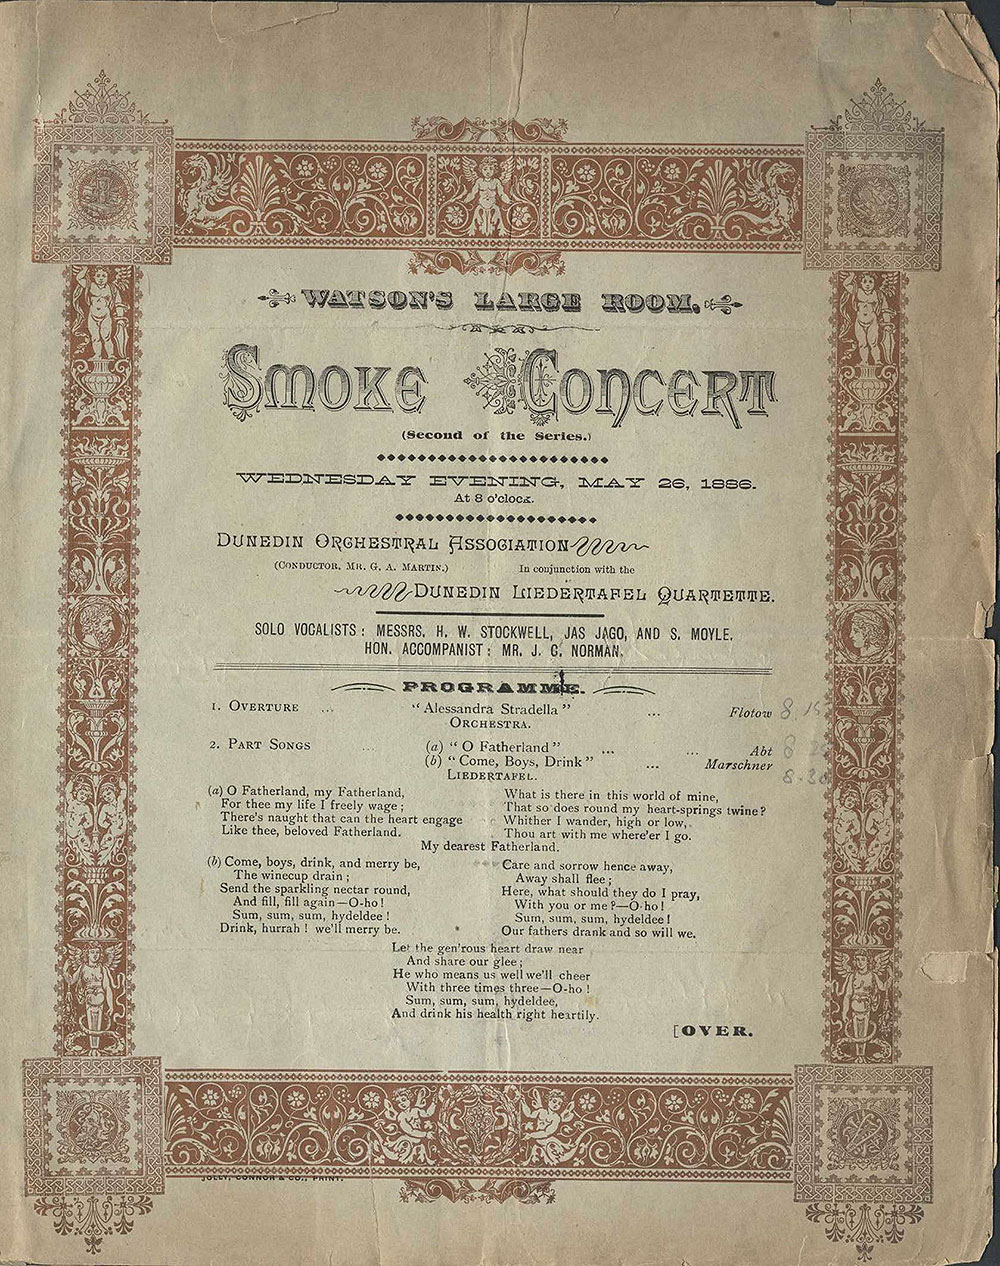 <em>Smoke concert</em>. (Dunedin Orchestral Association in conjunction with the Dunedin Liedertafel Quartette). Watson's Large Room, Dunedin, May 26, 1886.